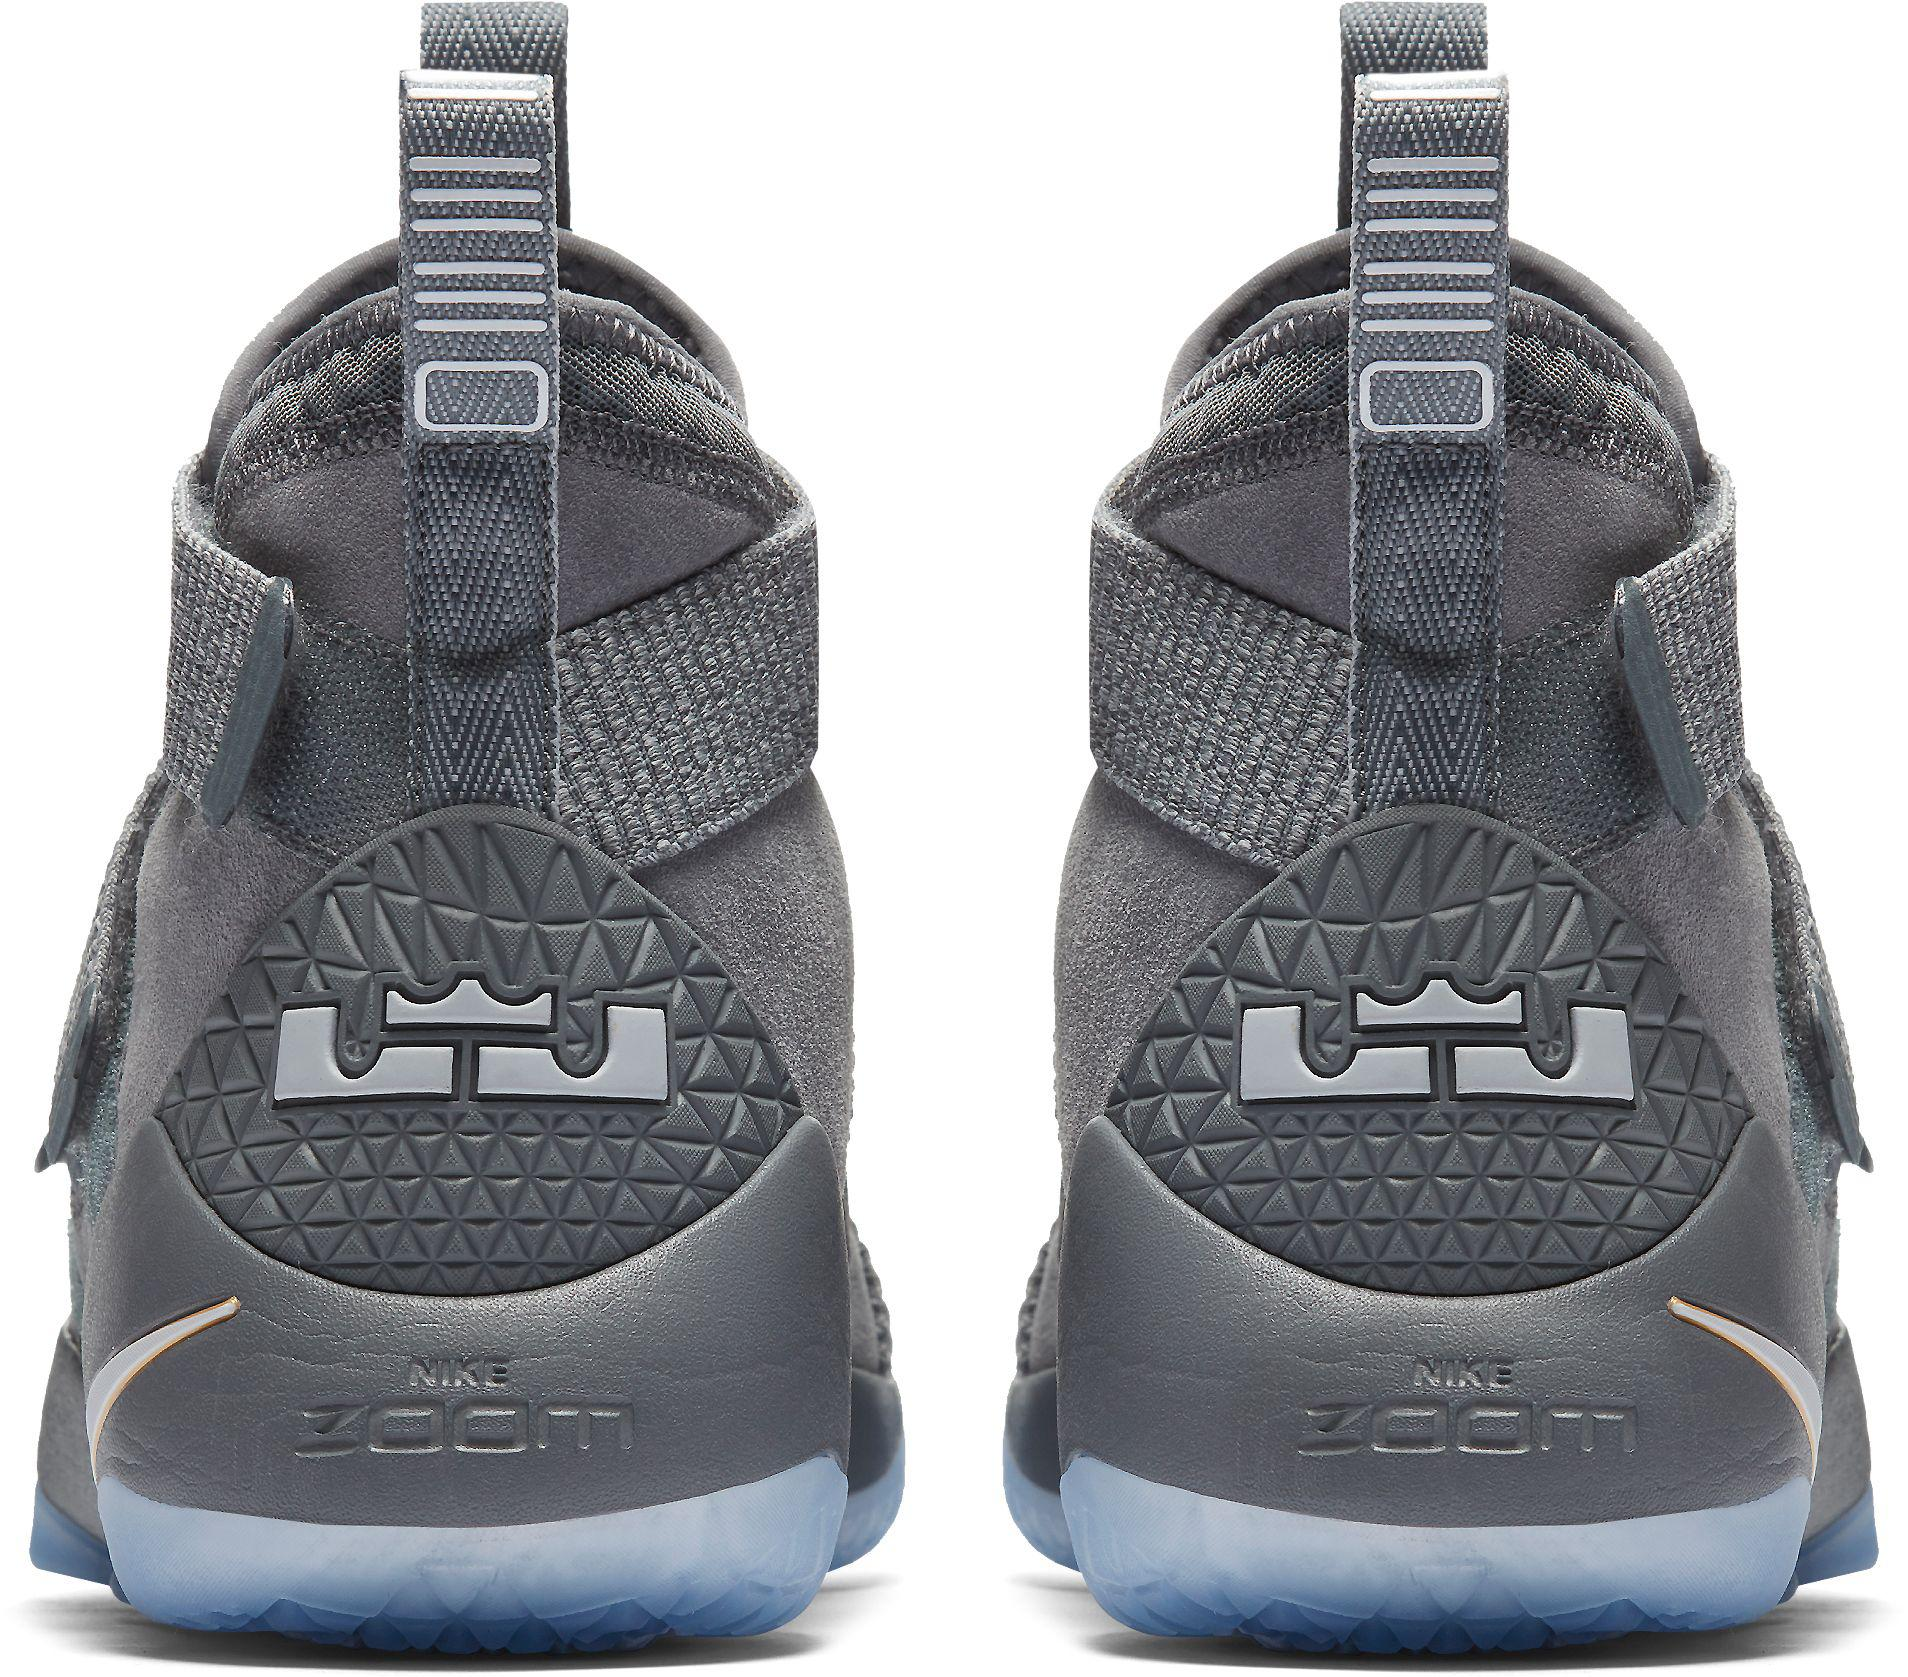 2bfacf71fbe Lyst - Nike Zoom Lebron Soldier Xi Basketball Shoes in Gray for Men